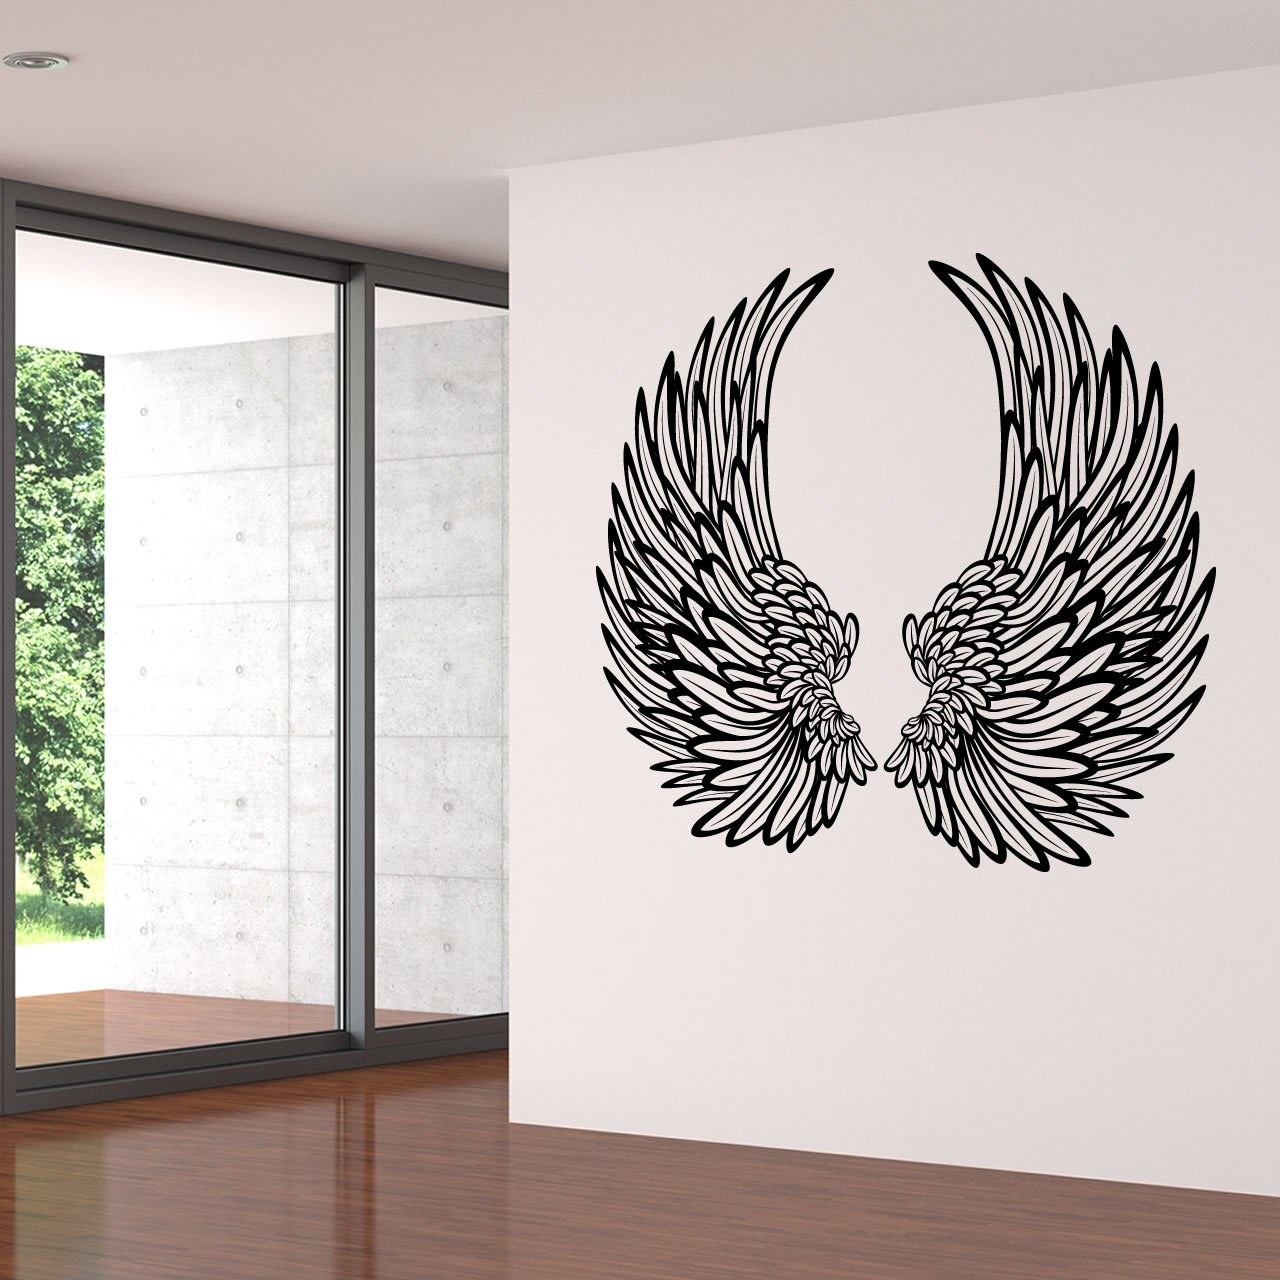 Decorative angel wings wall sticker world of wall stickers for Decorative wall mural